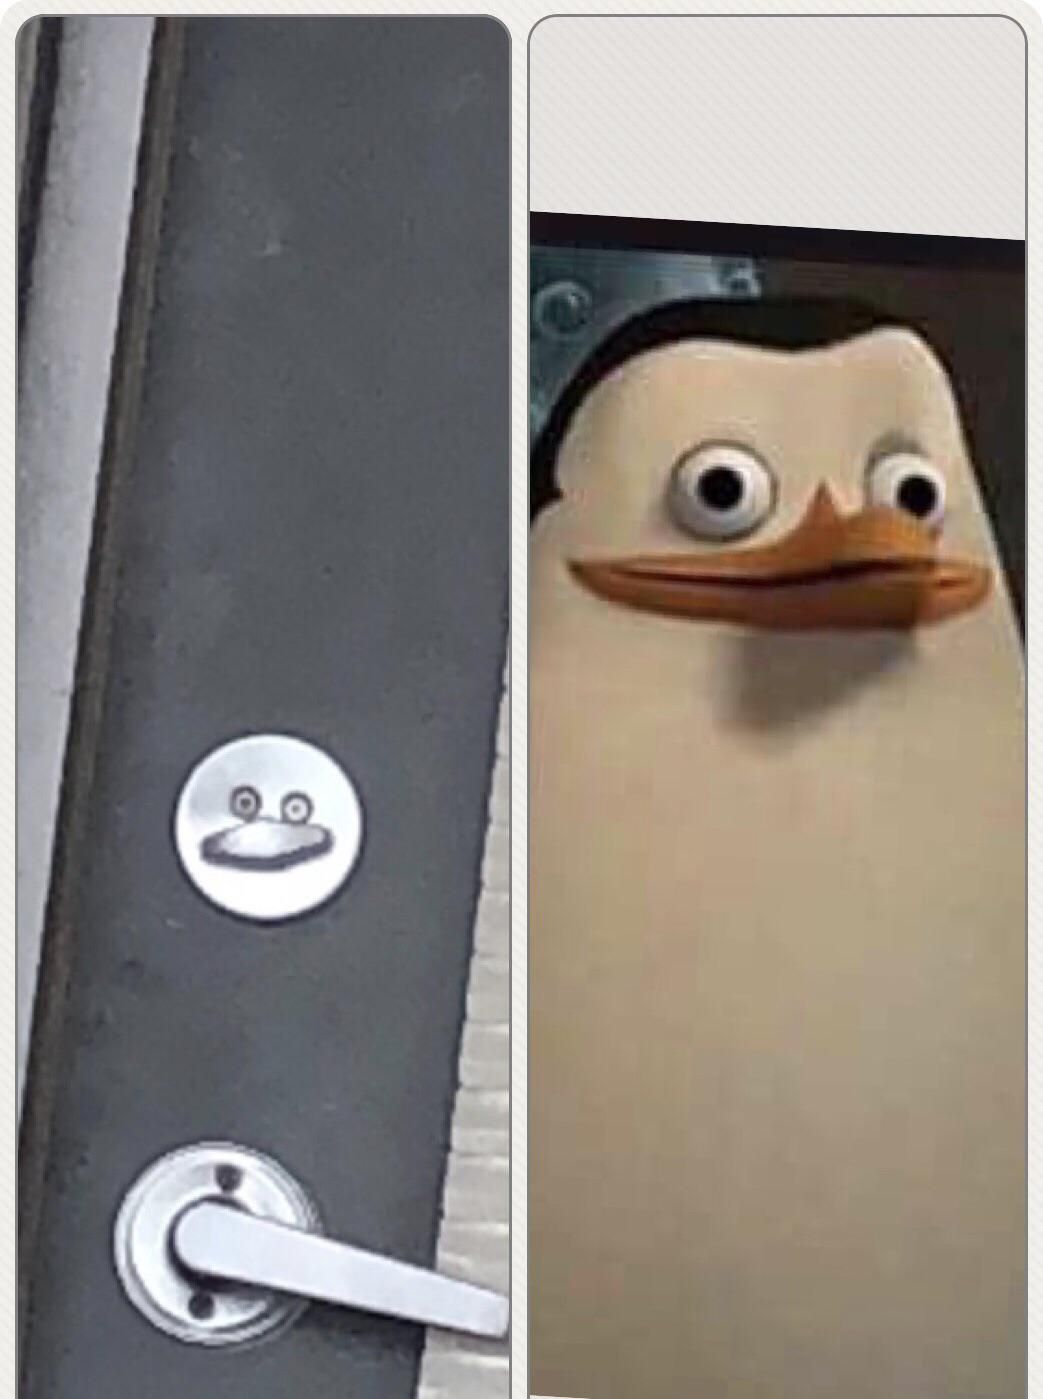 My lock looks like Private from Madagascar.